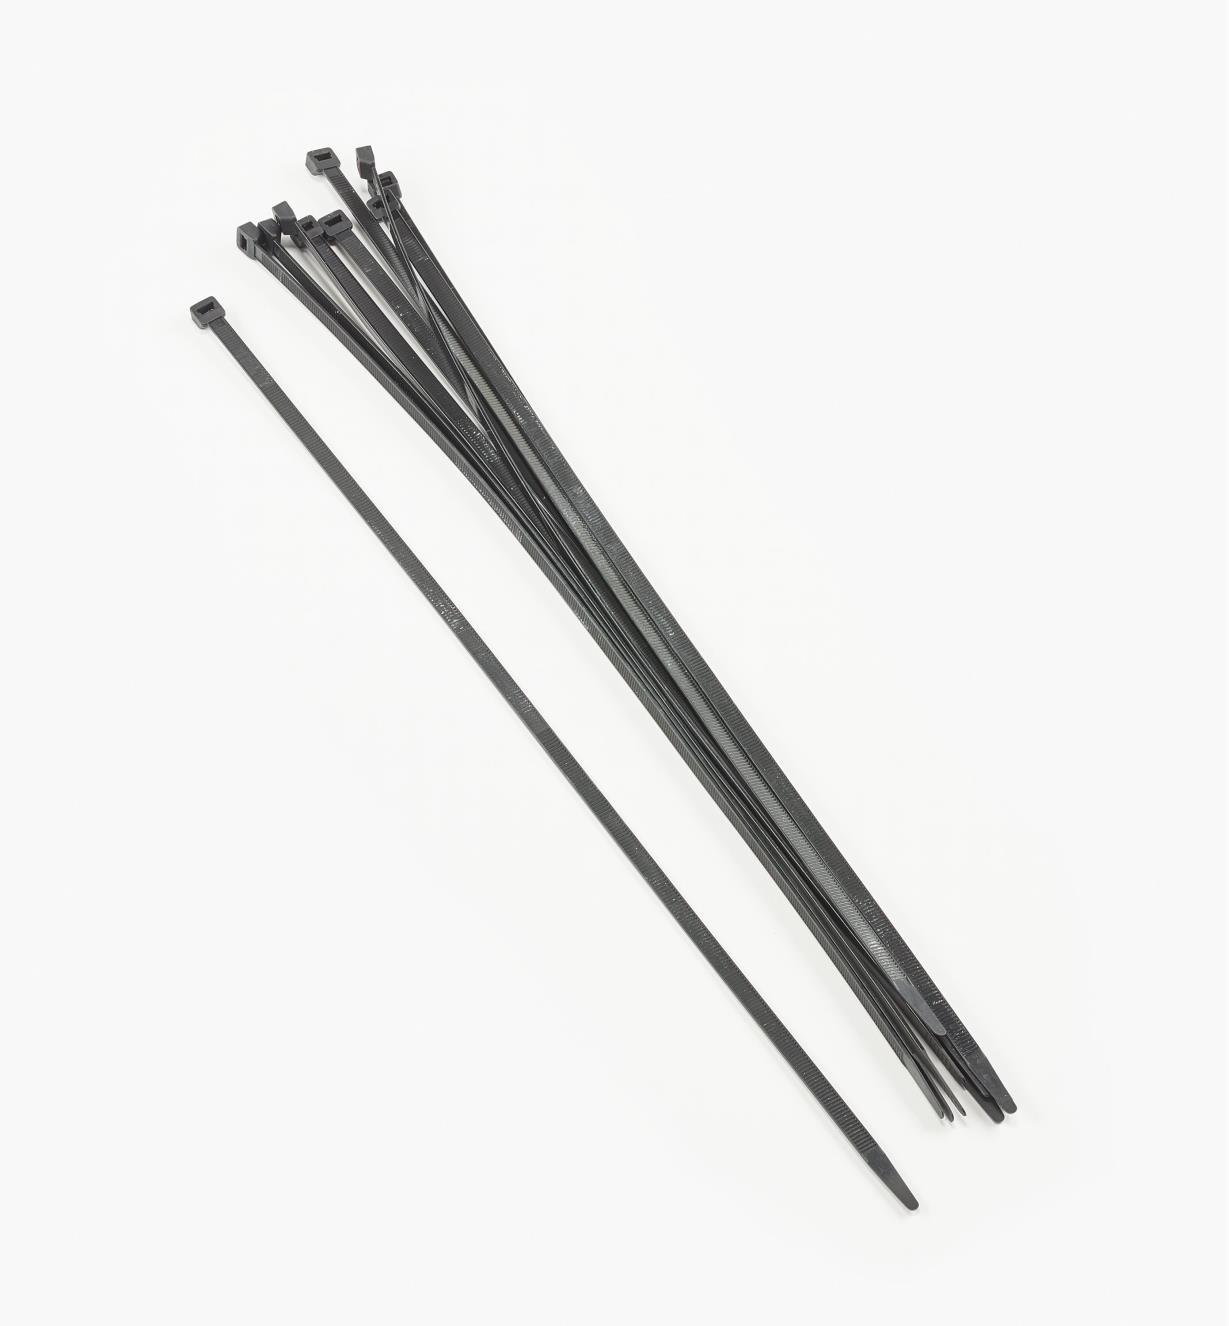 03K7061 - 10 attaches de 24 po (610 mm)